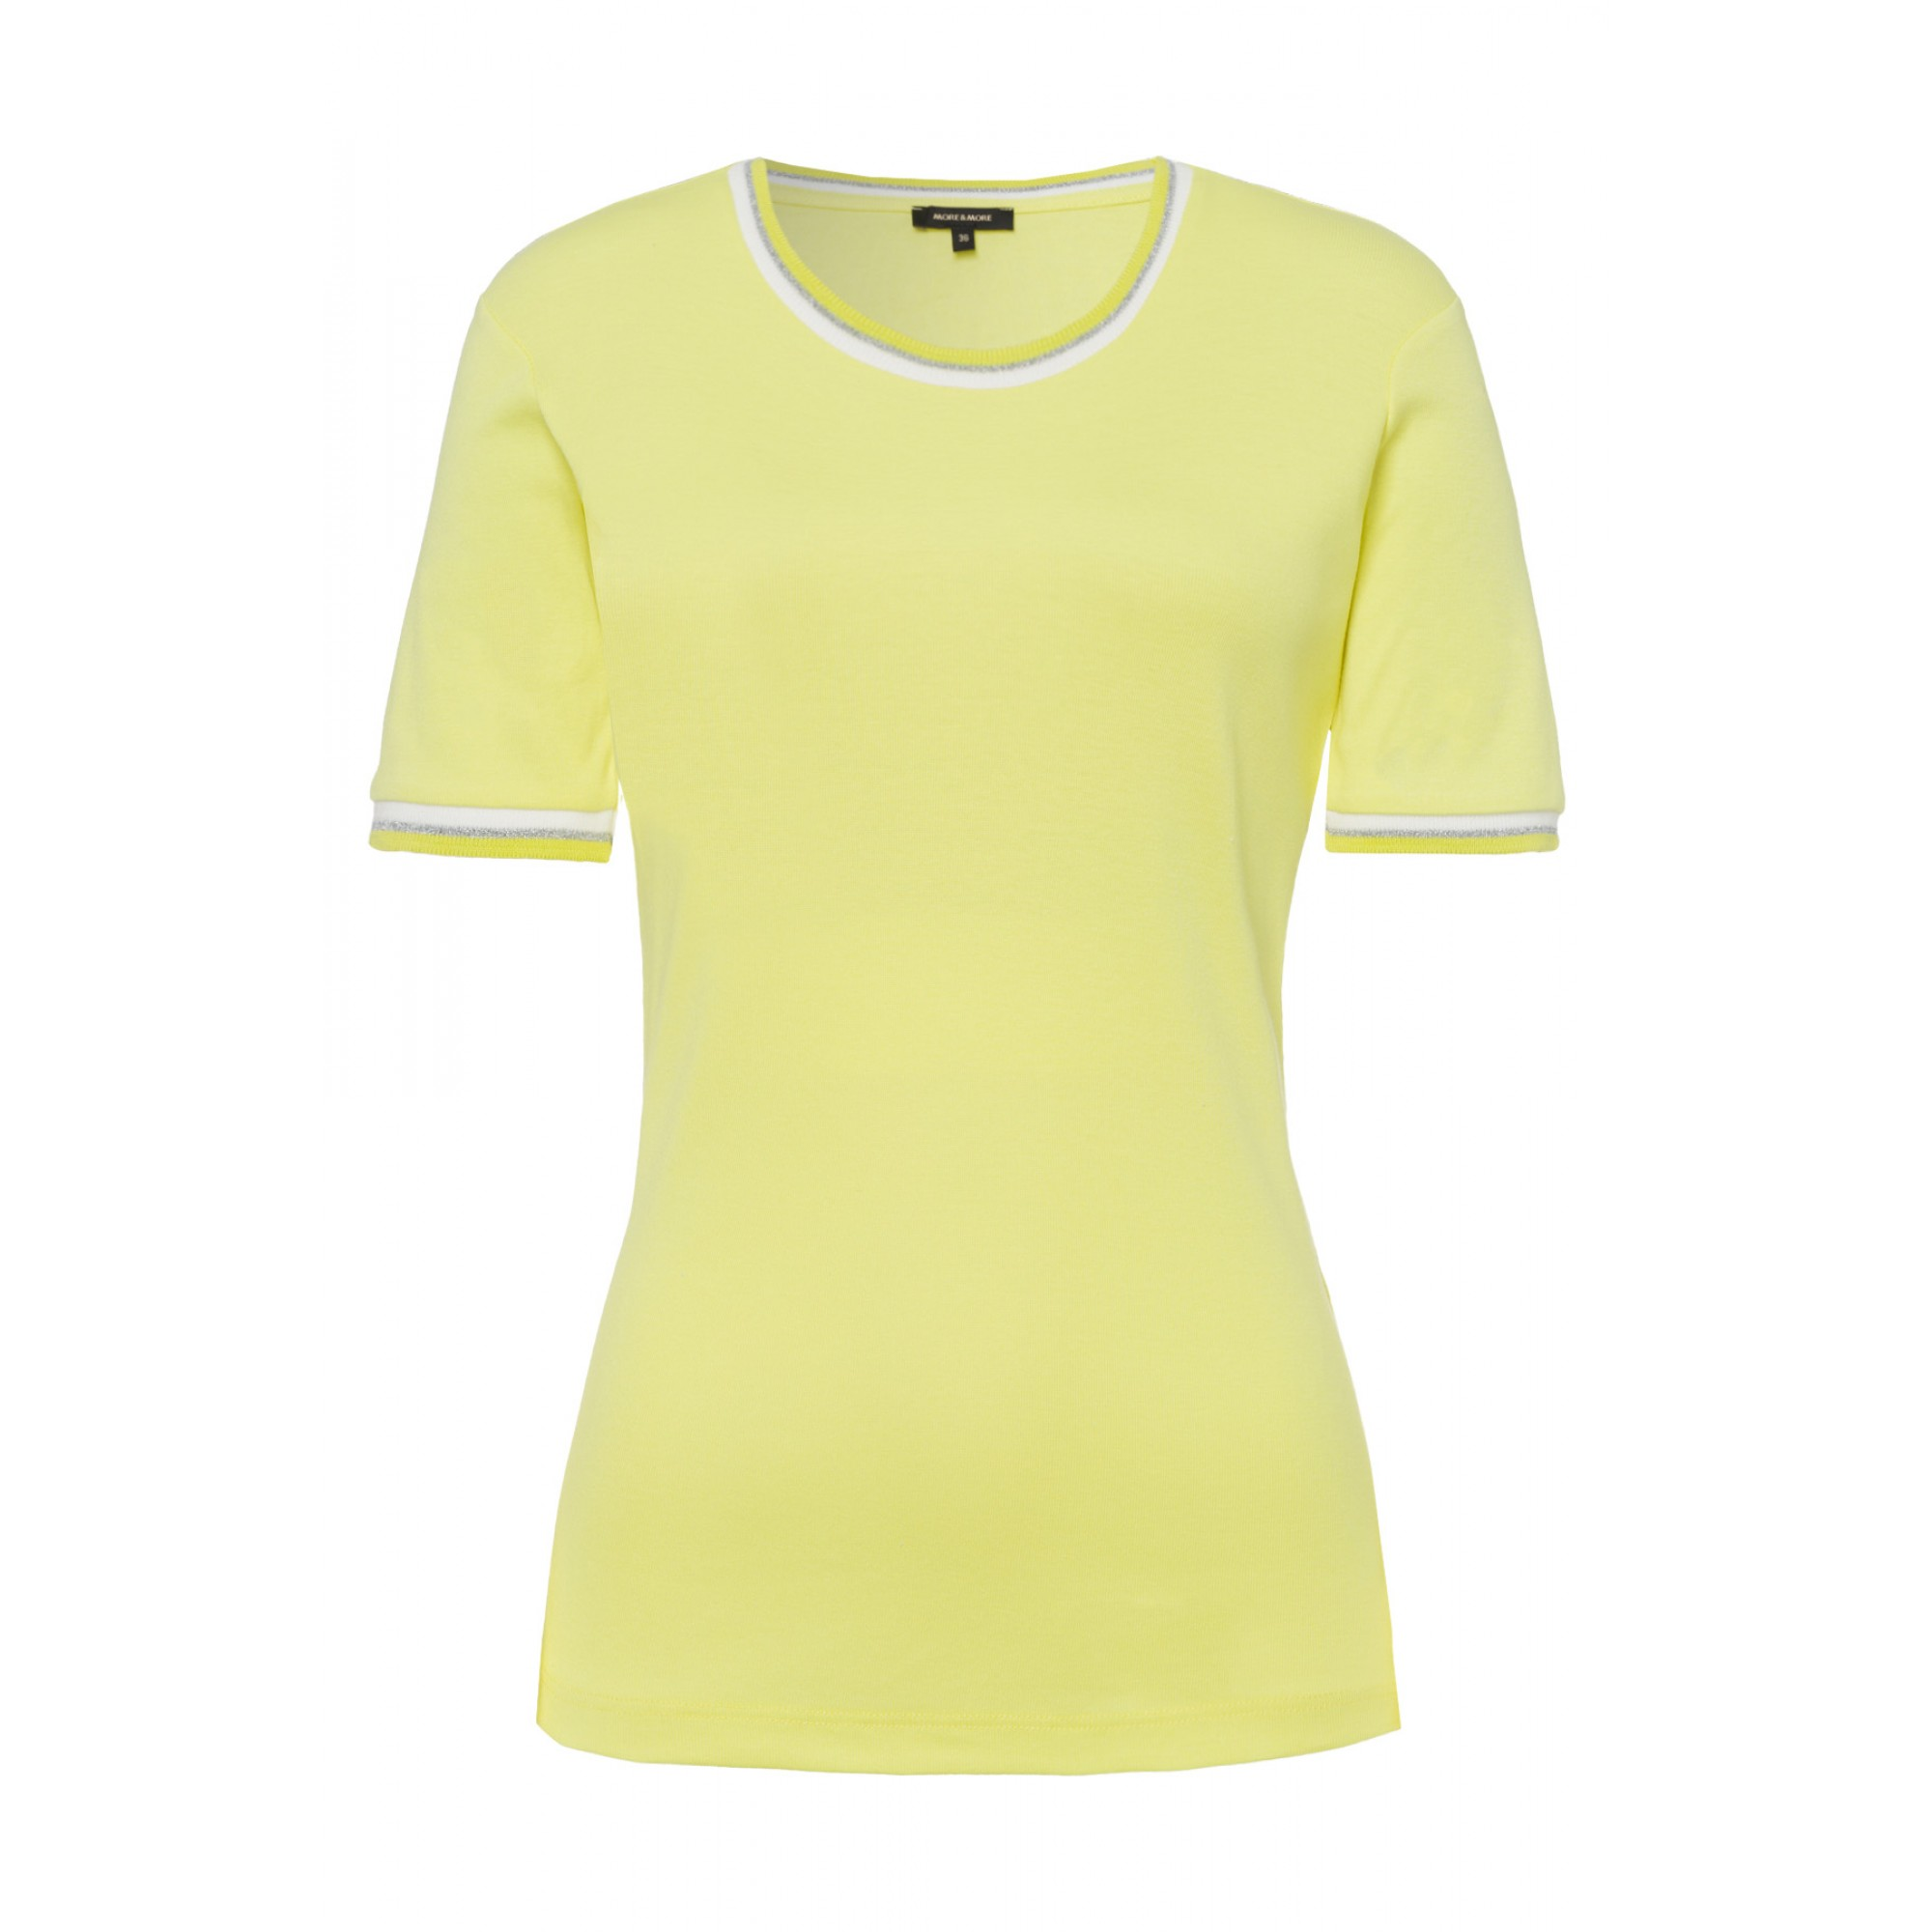 T-Shirt, lime green 01030010-0616 1